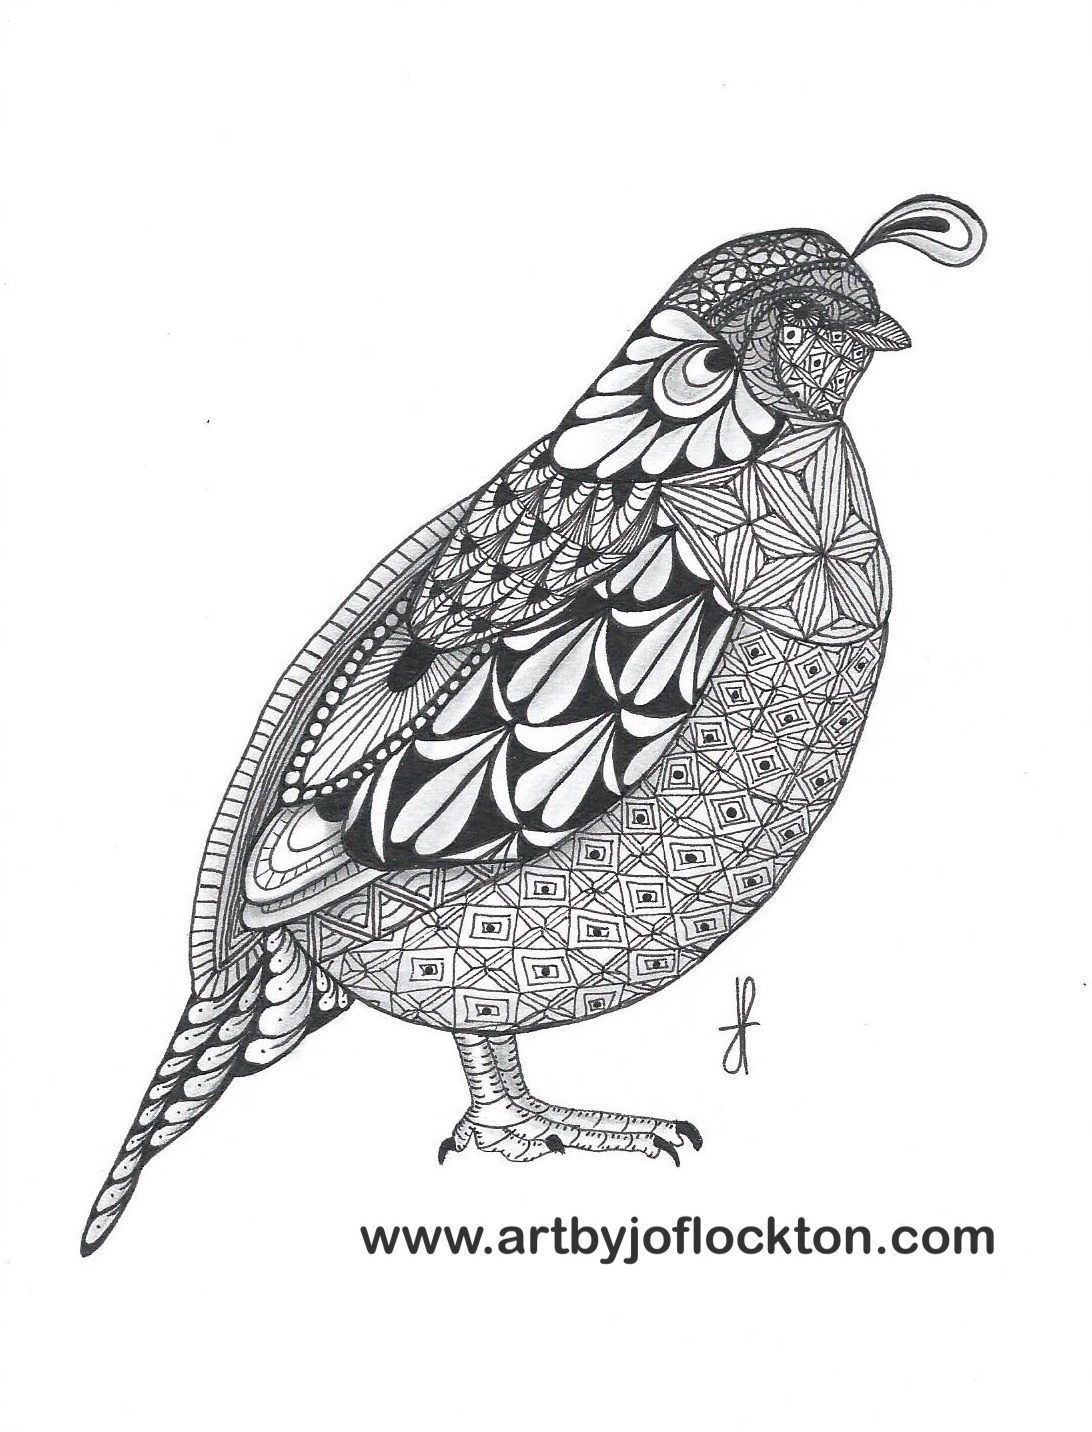 Coloring pages quail - Tangled Quail Ben Kwok Template 19 25